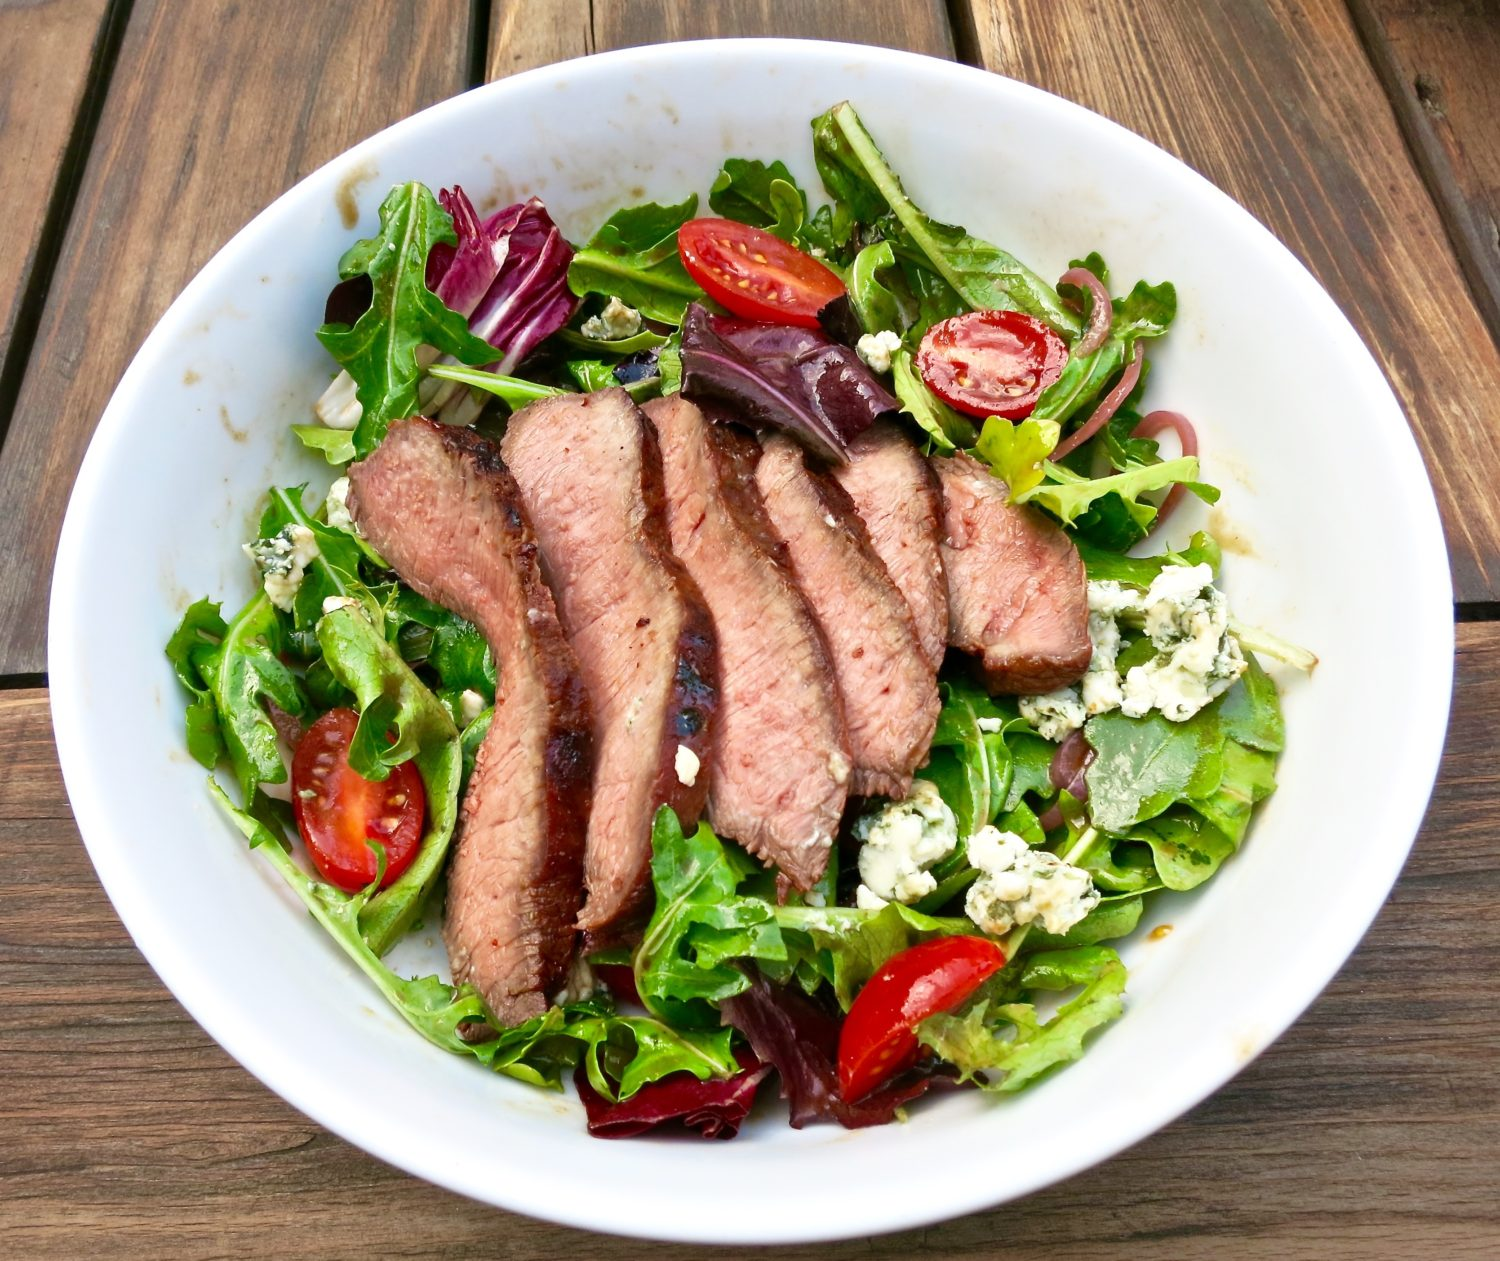 Grilled Steak Salad with Blue Cheese and Cherry Tomatoes